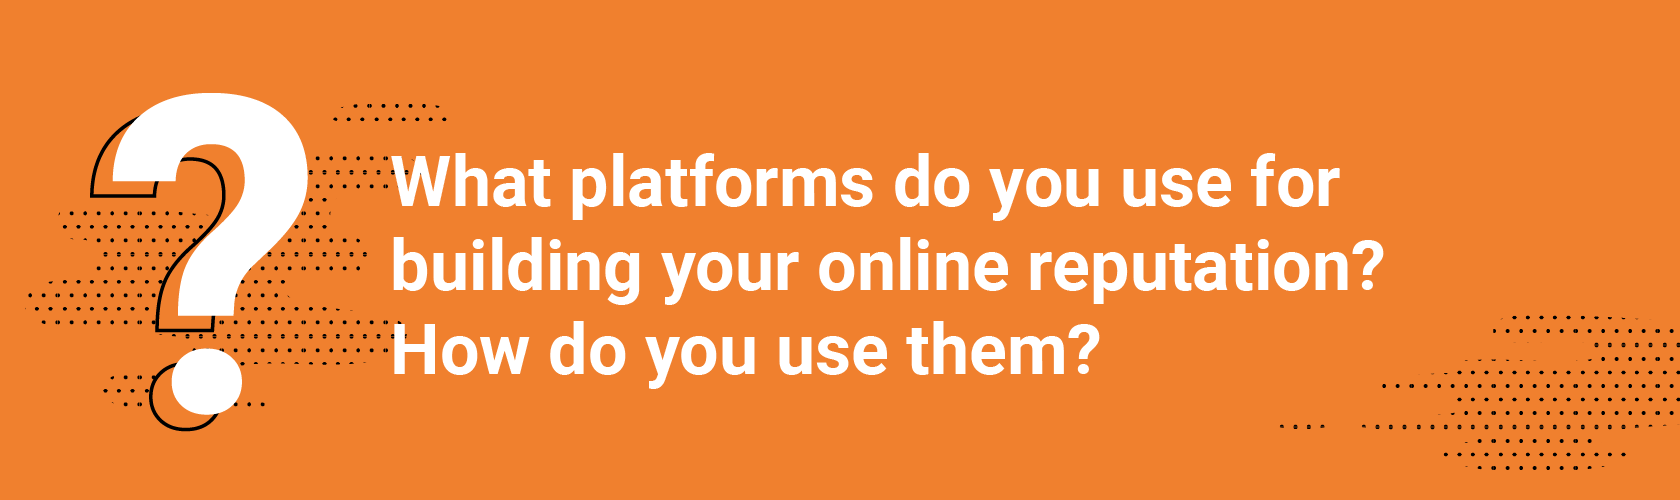 Q2 What platforms do you use for building your online reputation? How do you use them?